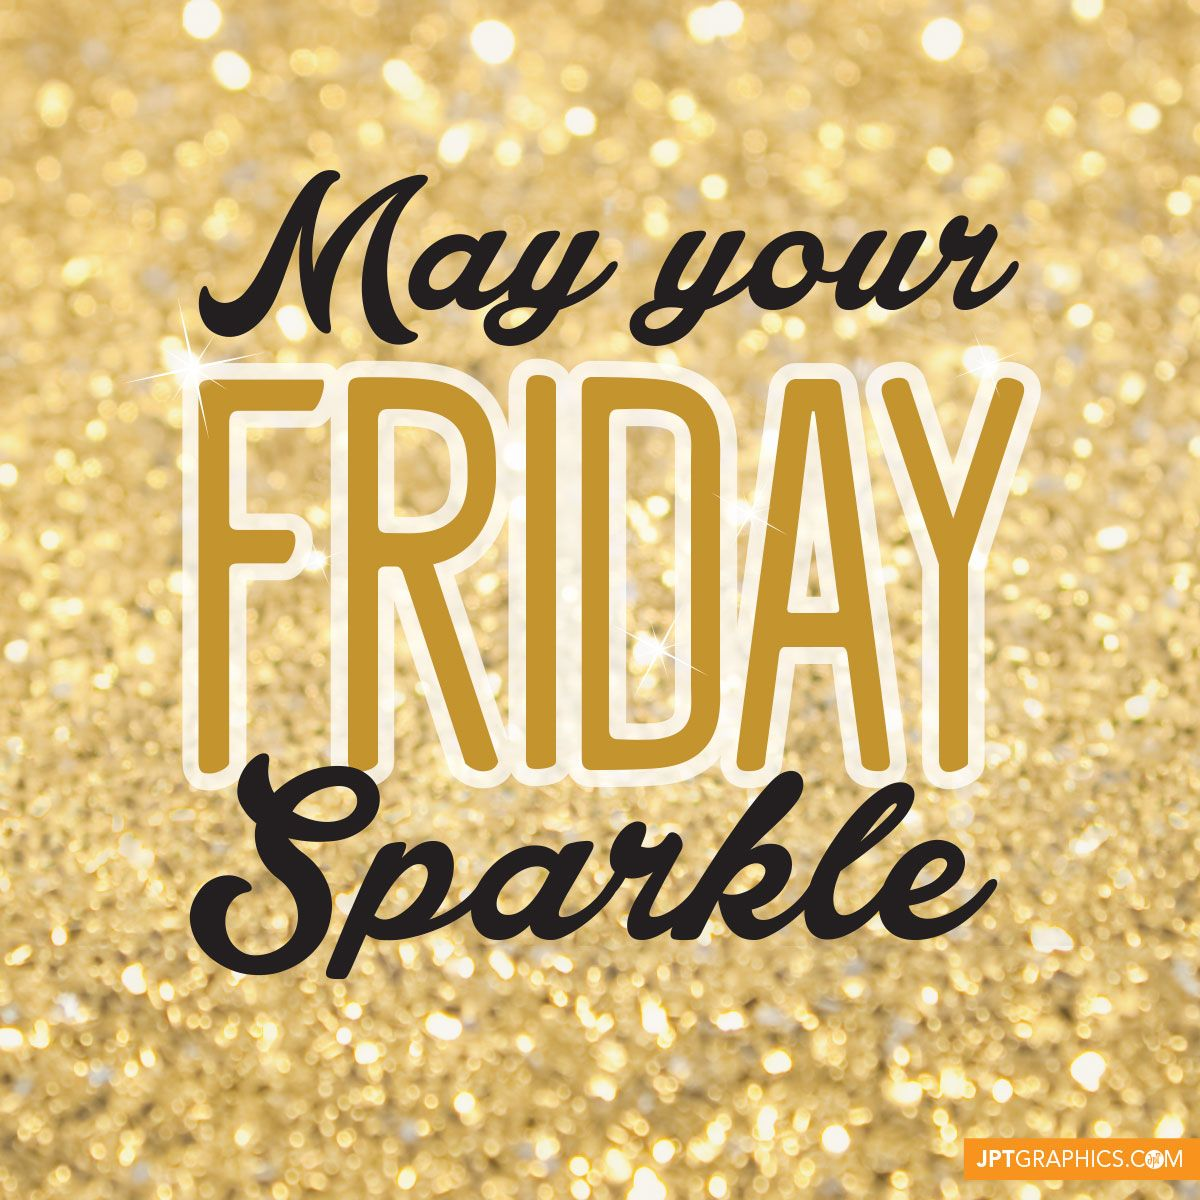 May Your Friday Sparkle! #friday #sparkle #jptgraphics